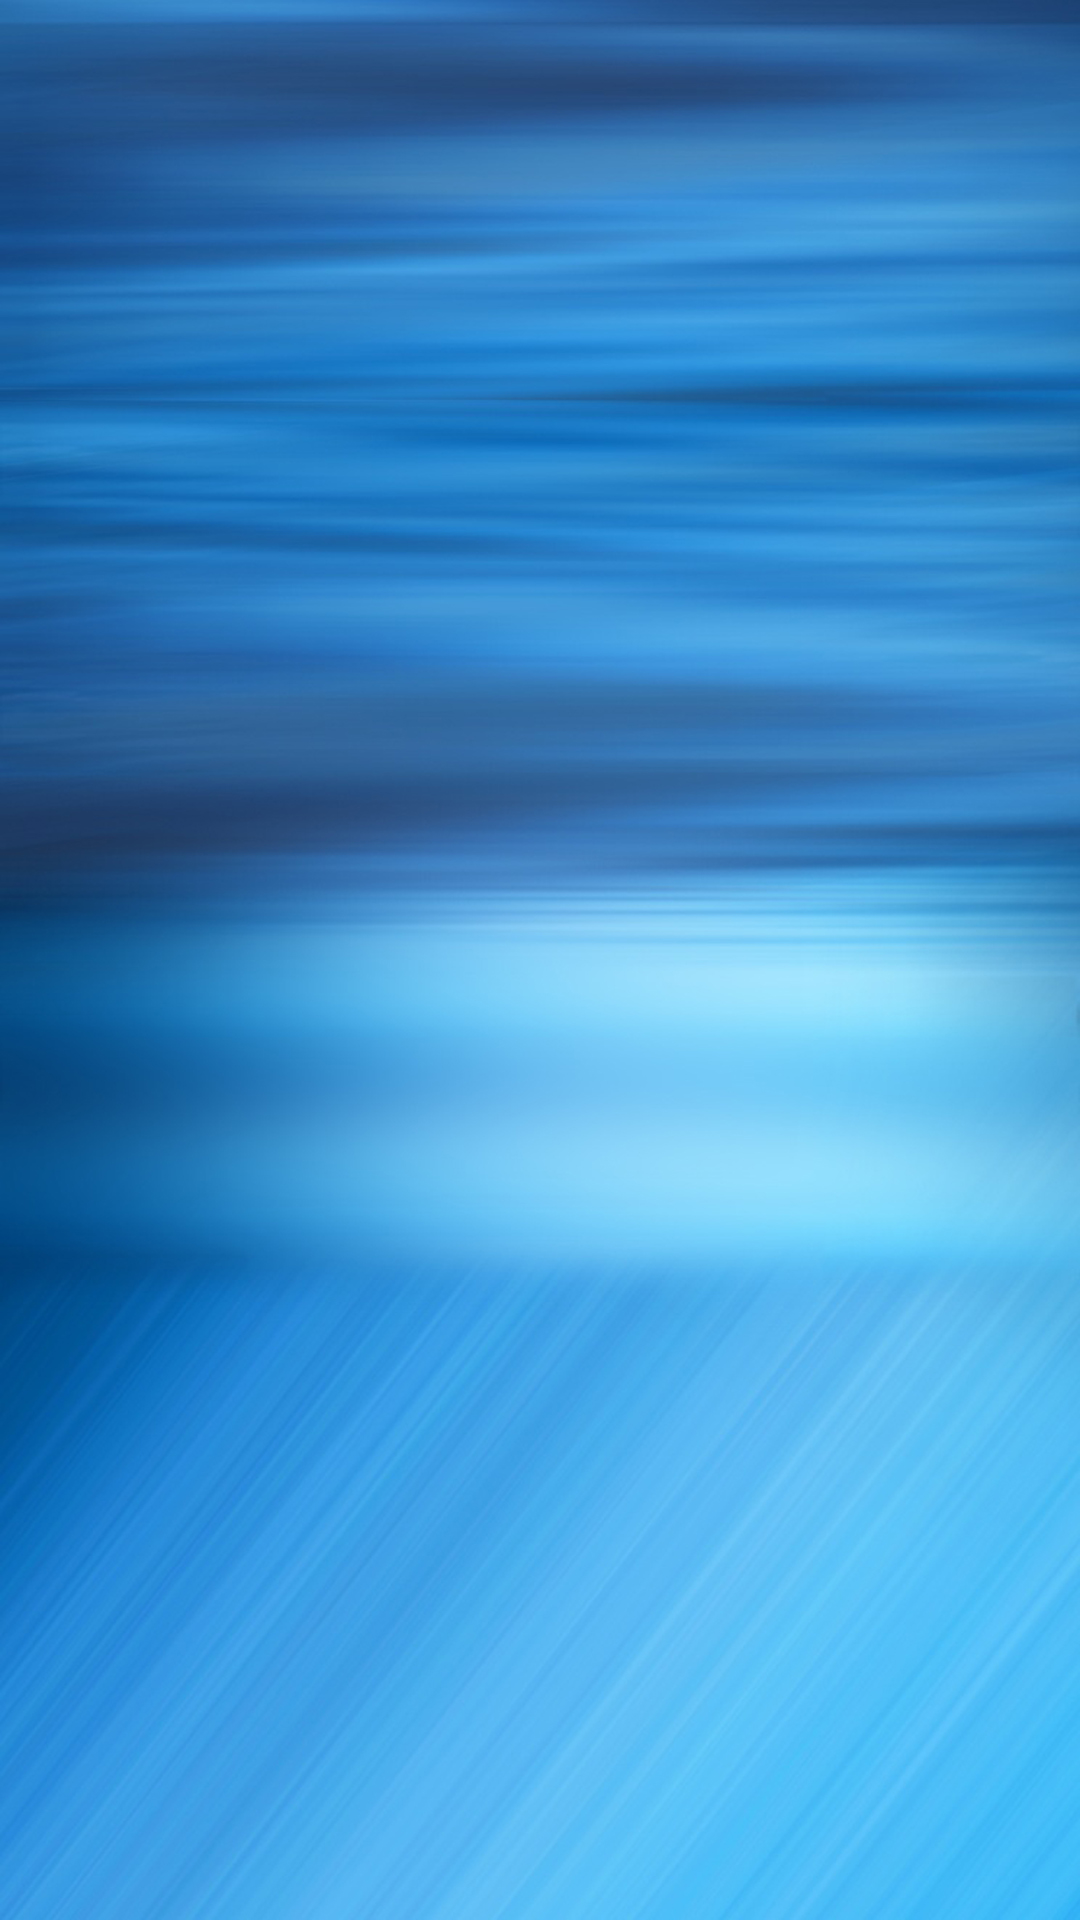 iOS 8 Stock Smartphone Wallpapers